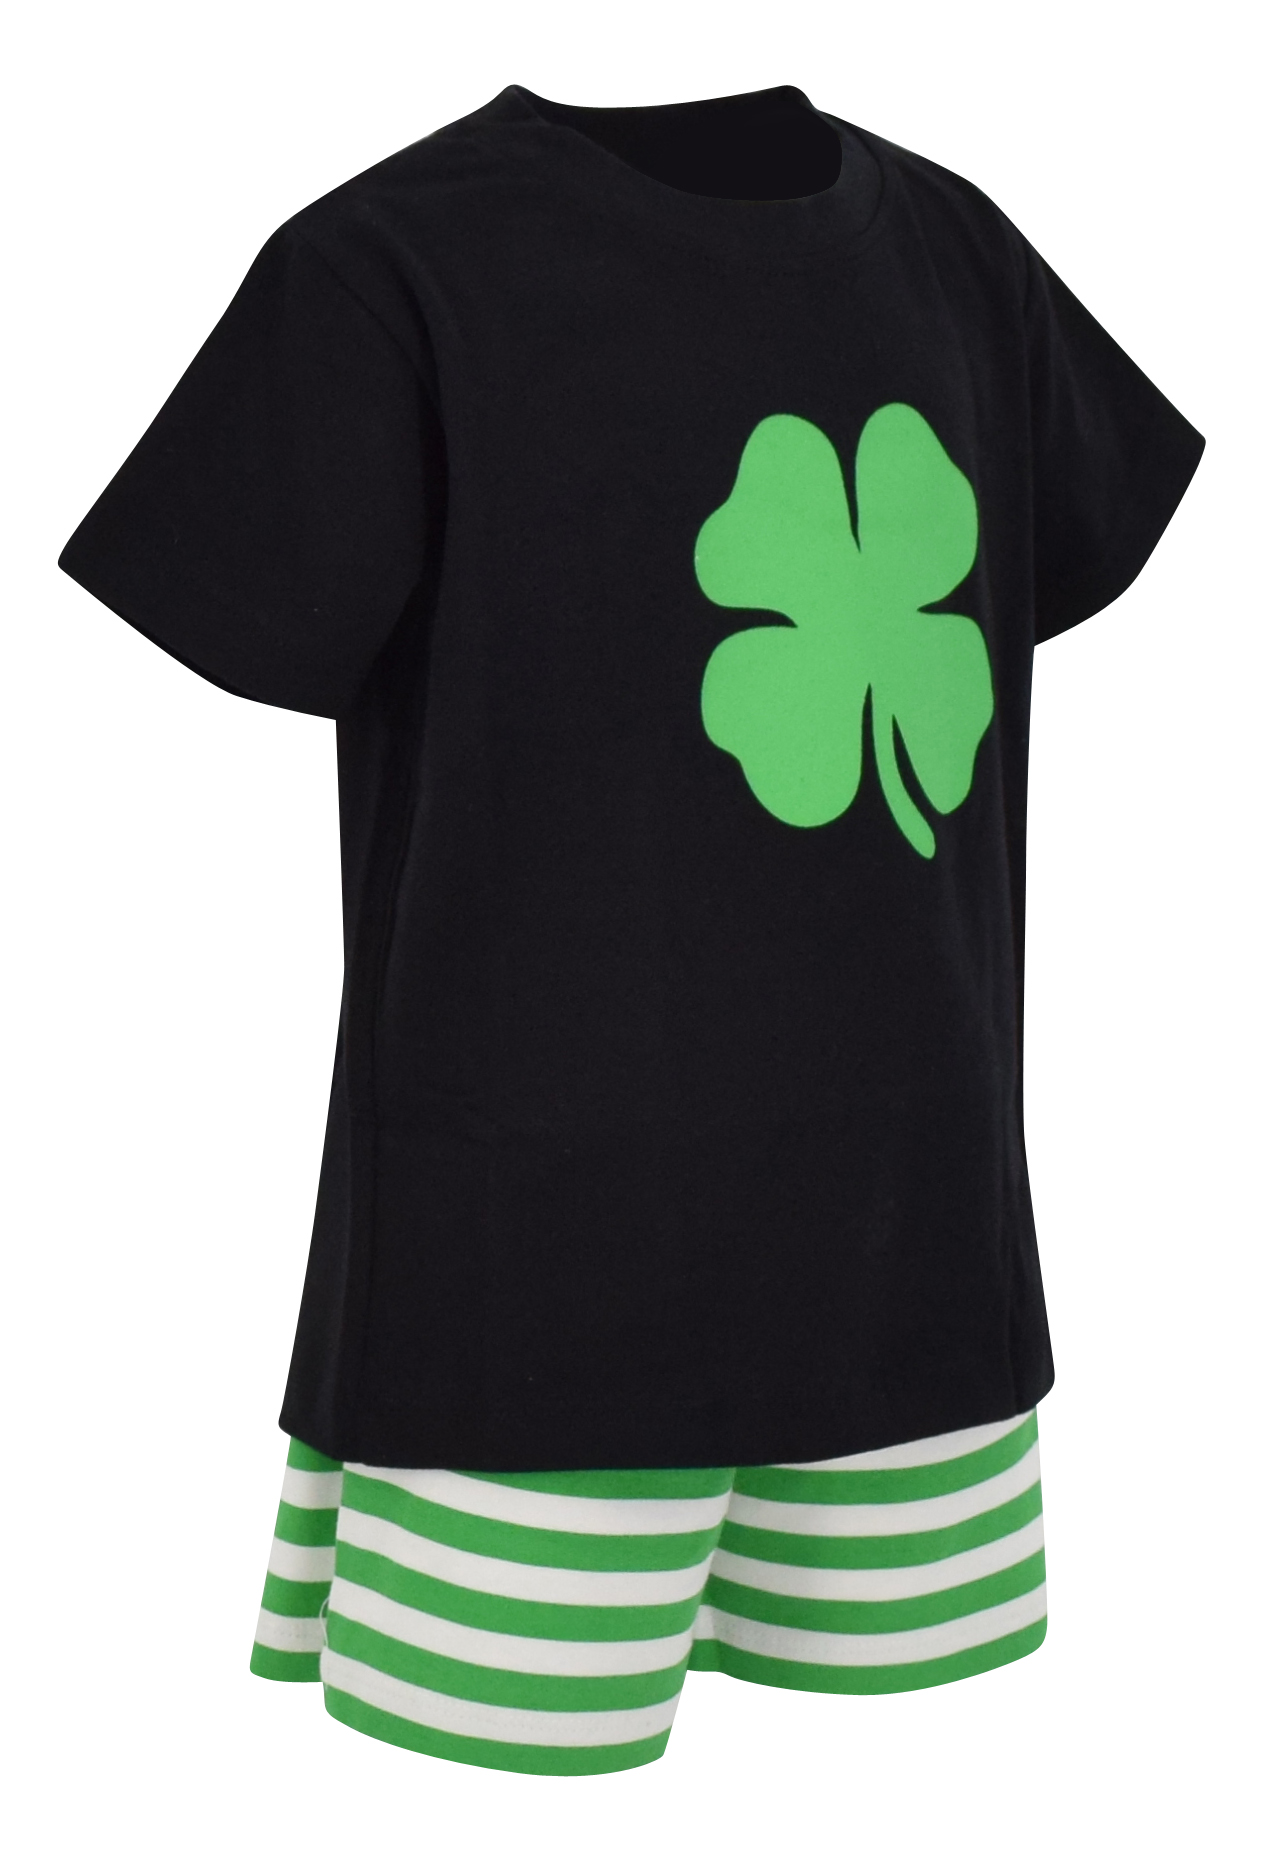 Boys-2-Piece-ST-Patricks-Day-Clover-Outfit-2t-3t-4t-5-6-7-8-Toddler-Kids-Clothes thumbnail 40